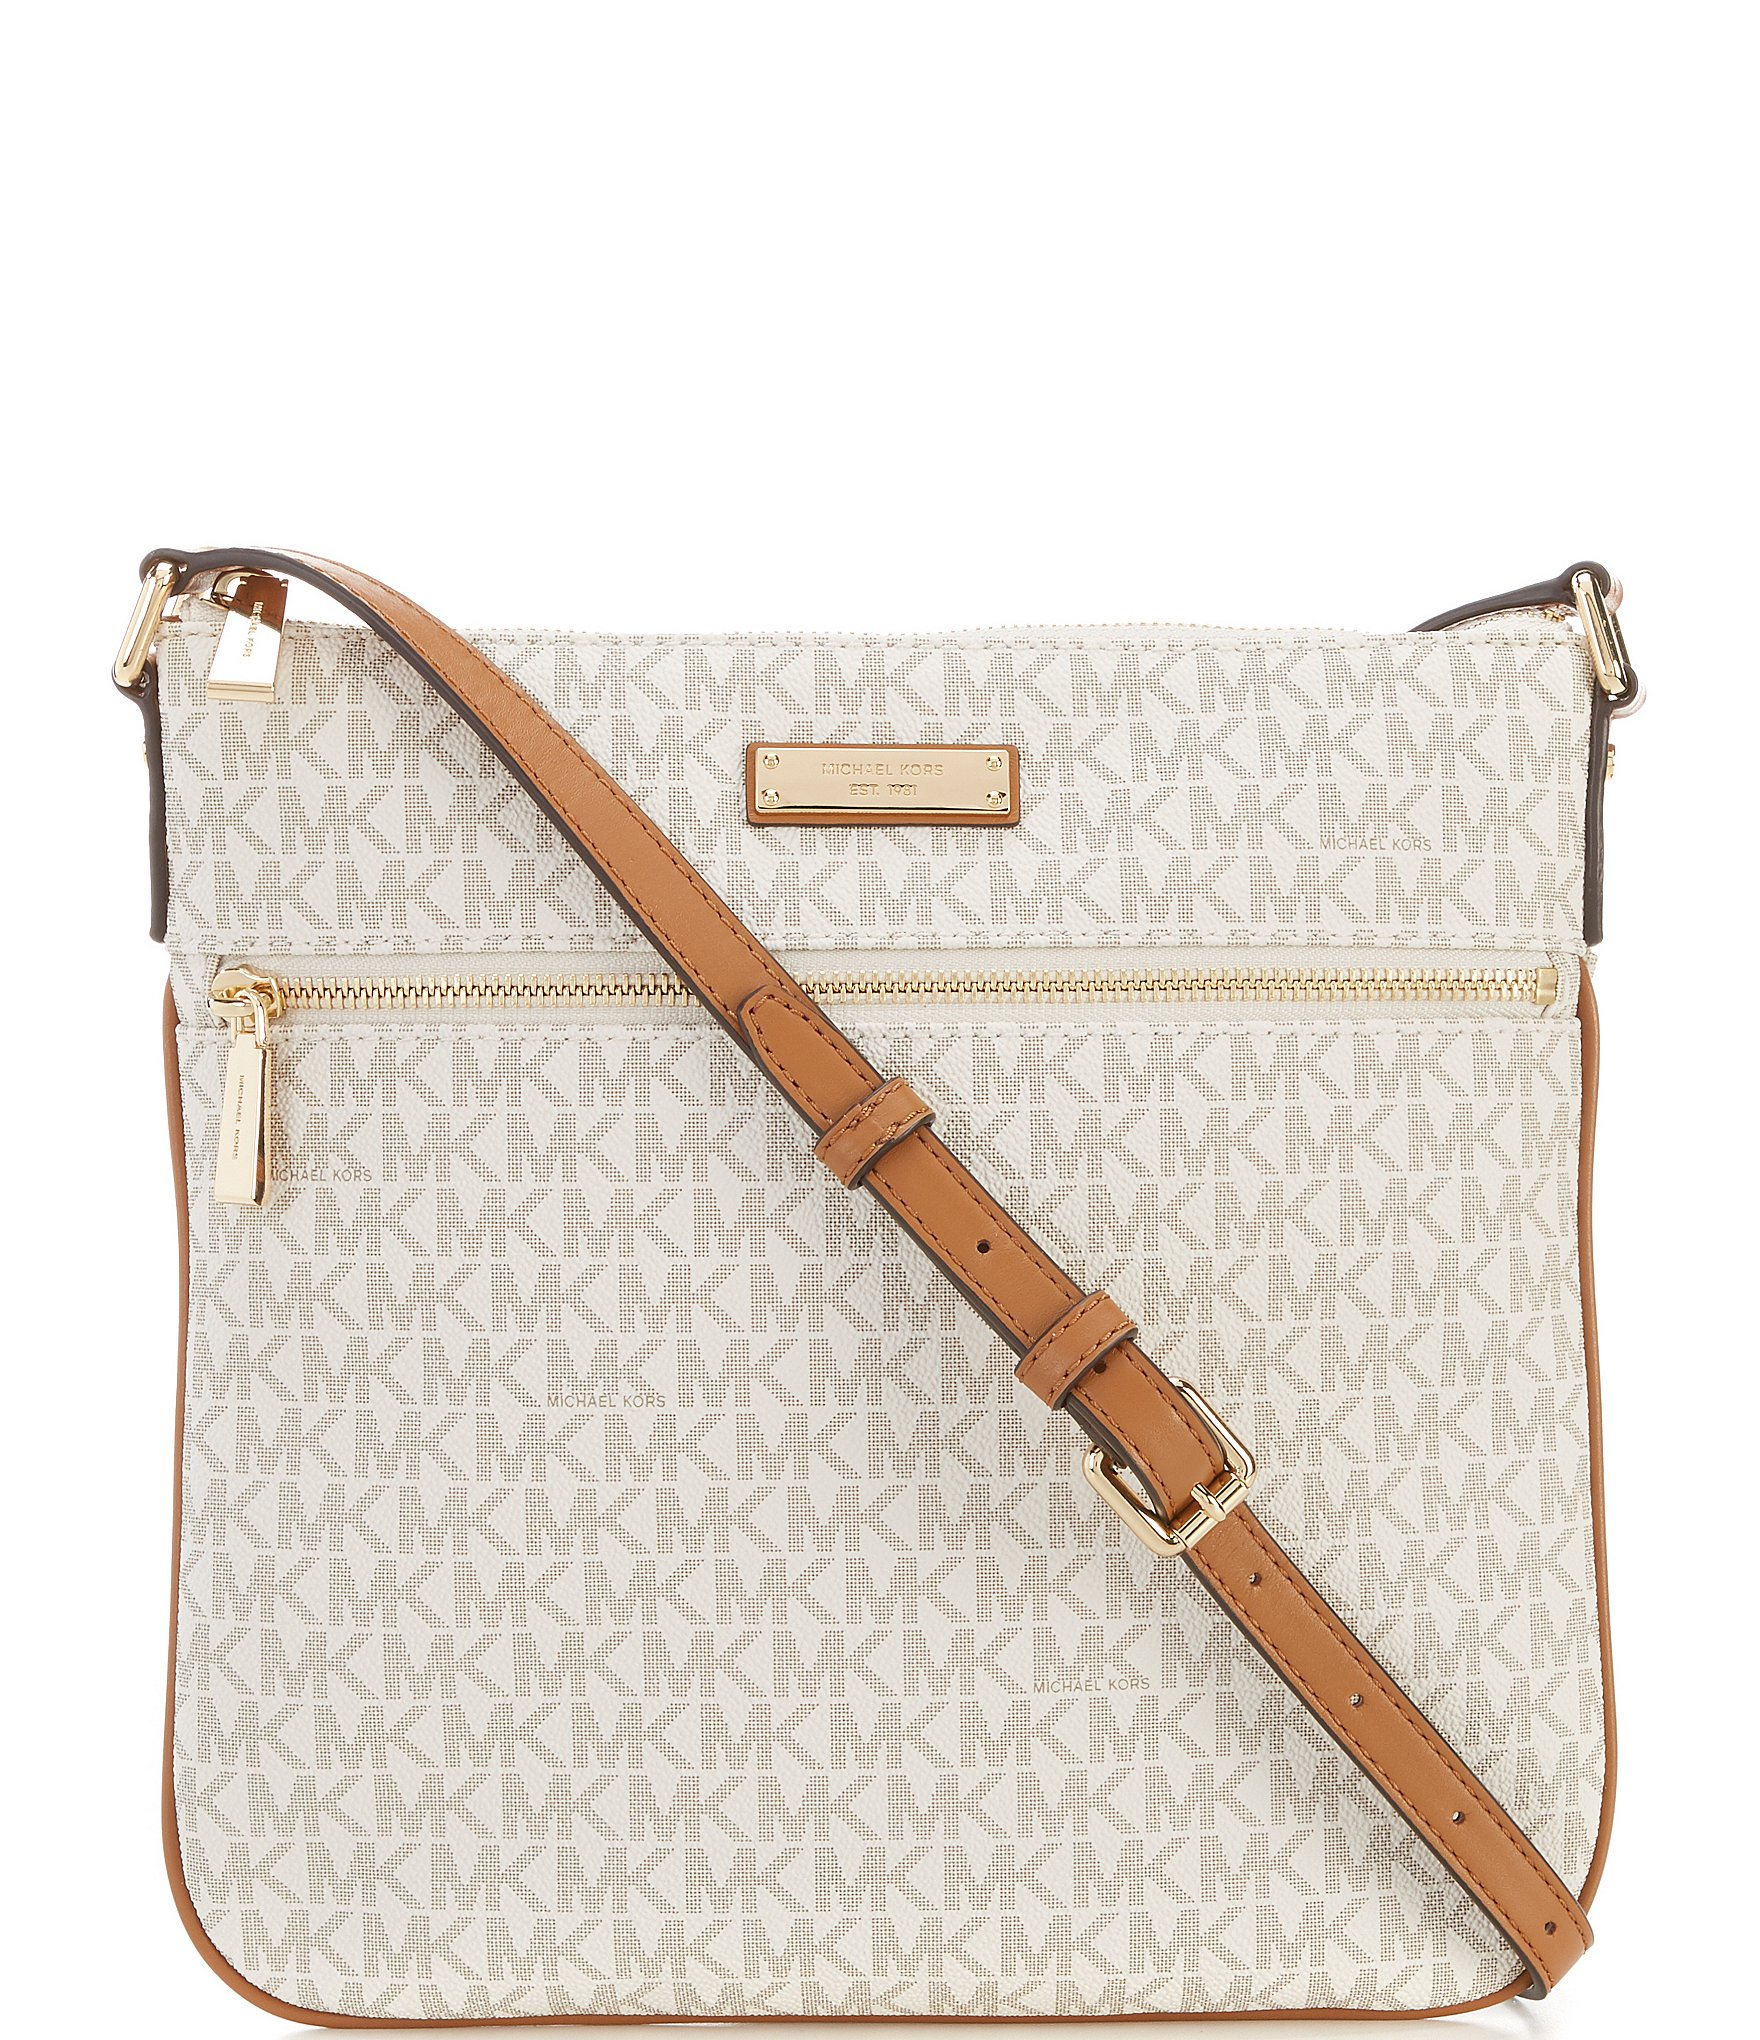 MICHAEL Michael Kors Bedford Signature Flat Cross-Body Bag  b701c2b595e0e